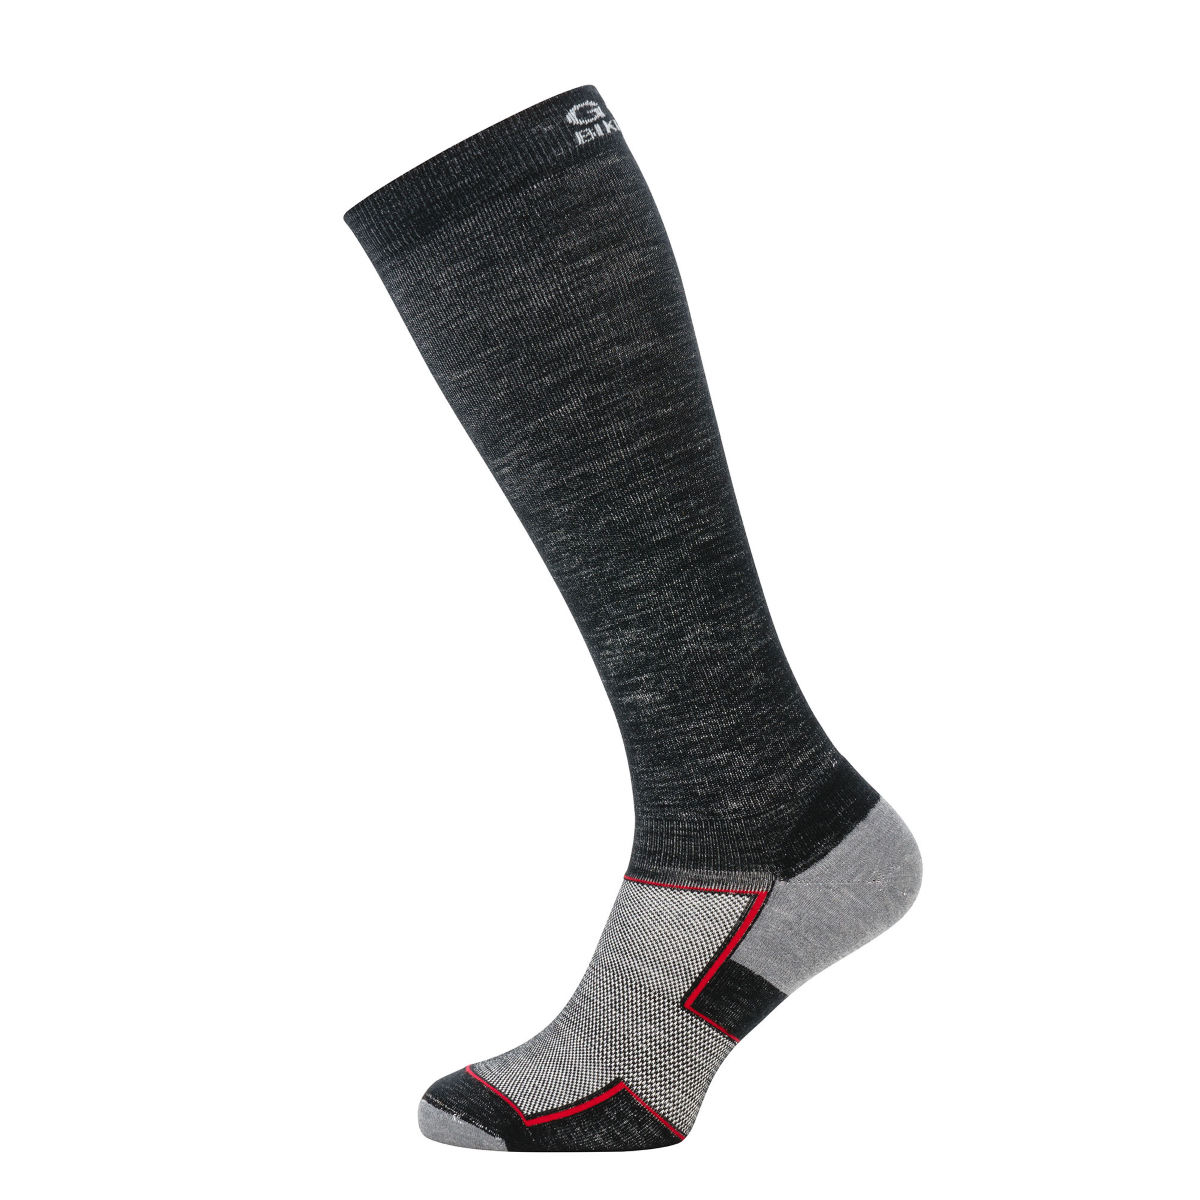 Chaussettes Gore Bike Wear Performance Fibre Thermo (longues) - 41-43